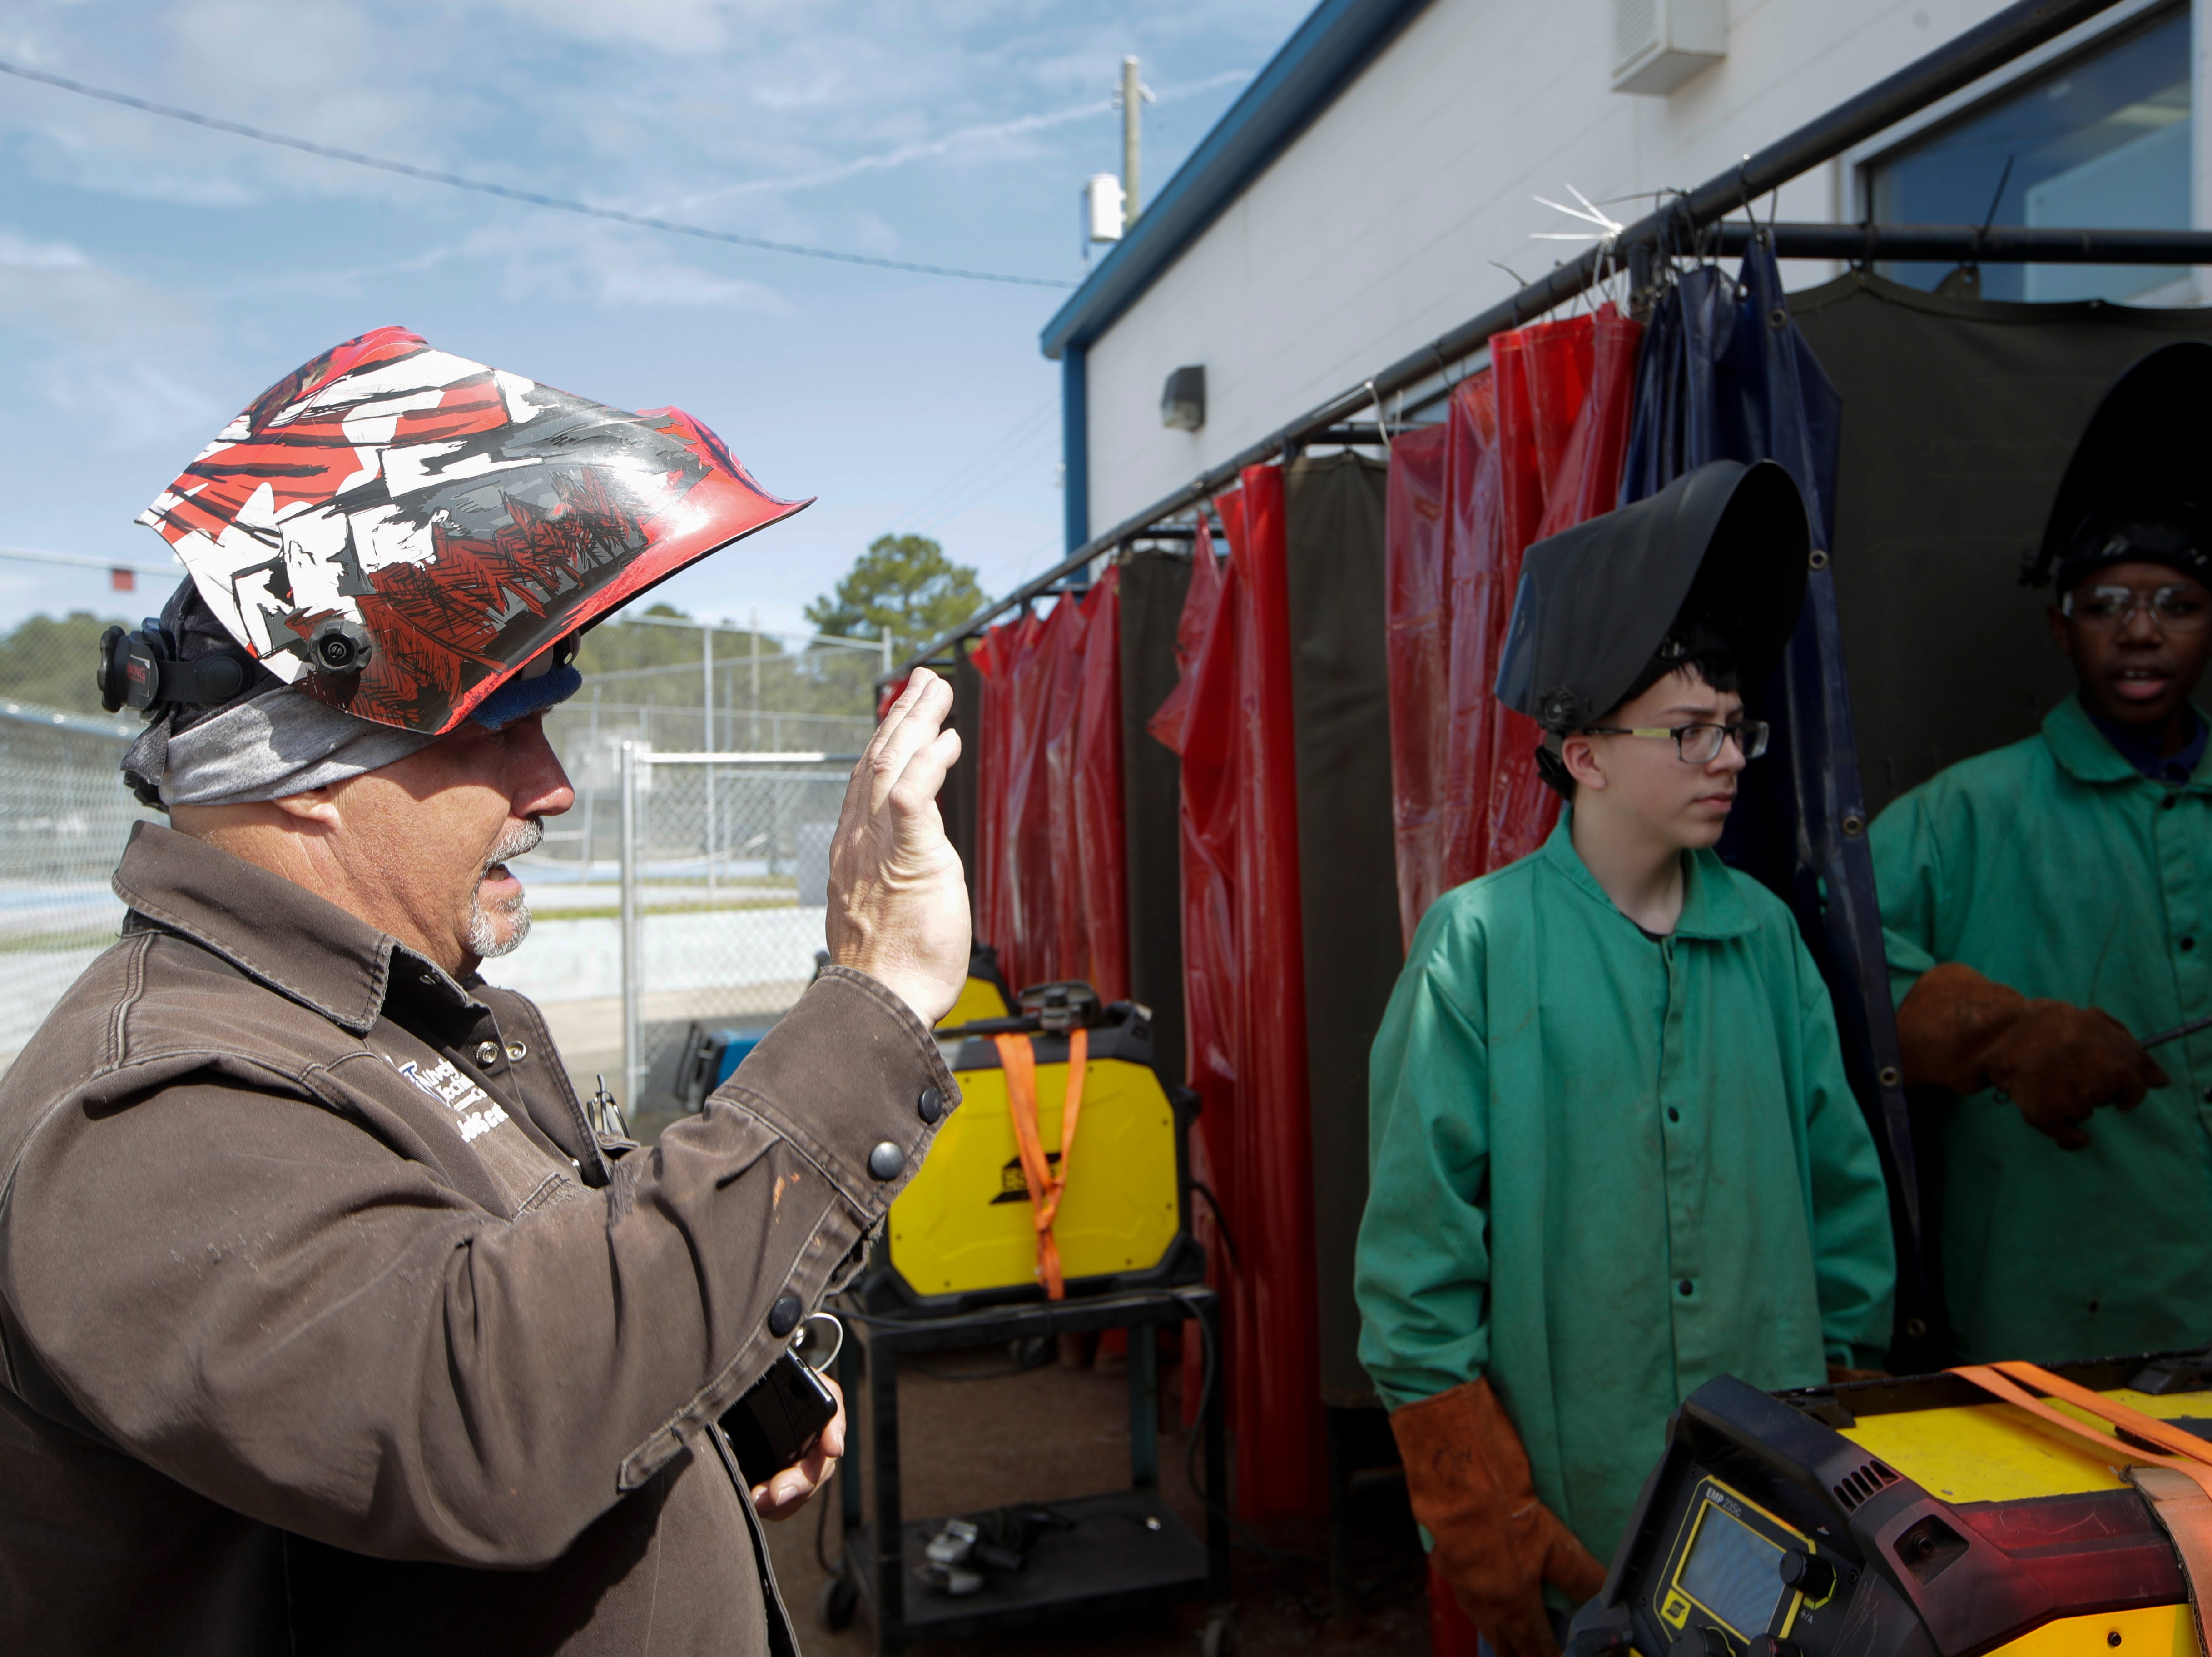 Godby High School welding instructor John Scott gives Clarence Lovett, 15, right, tips on how to weld more comfortably during class Tuesday, Feb. 5, 2019.